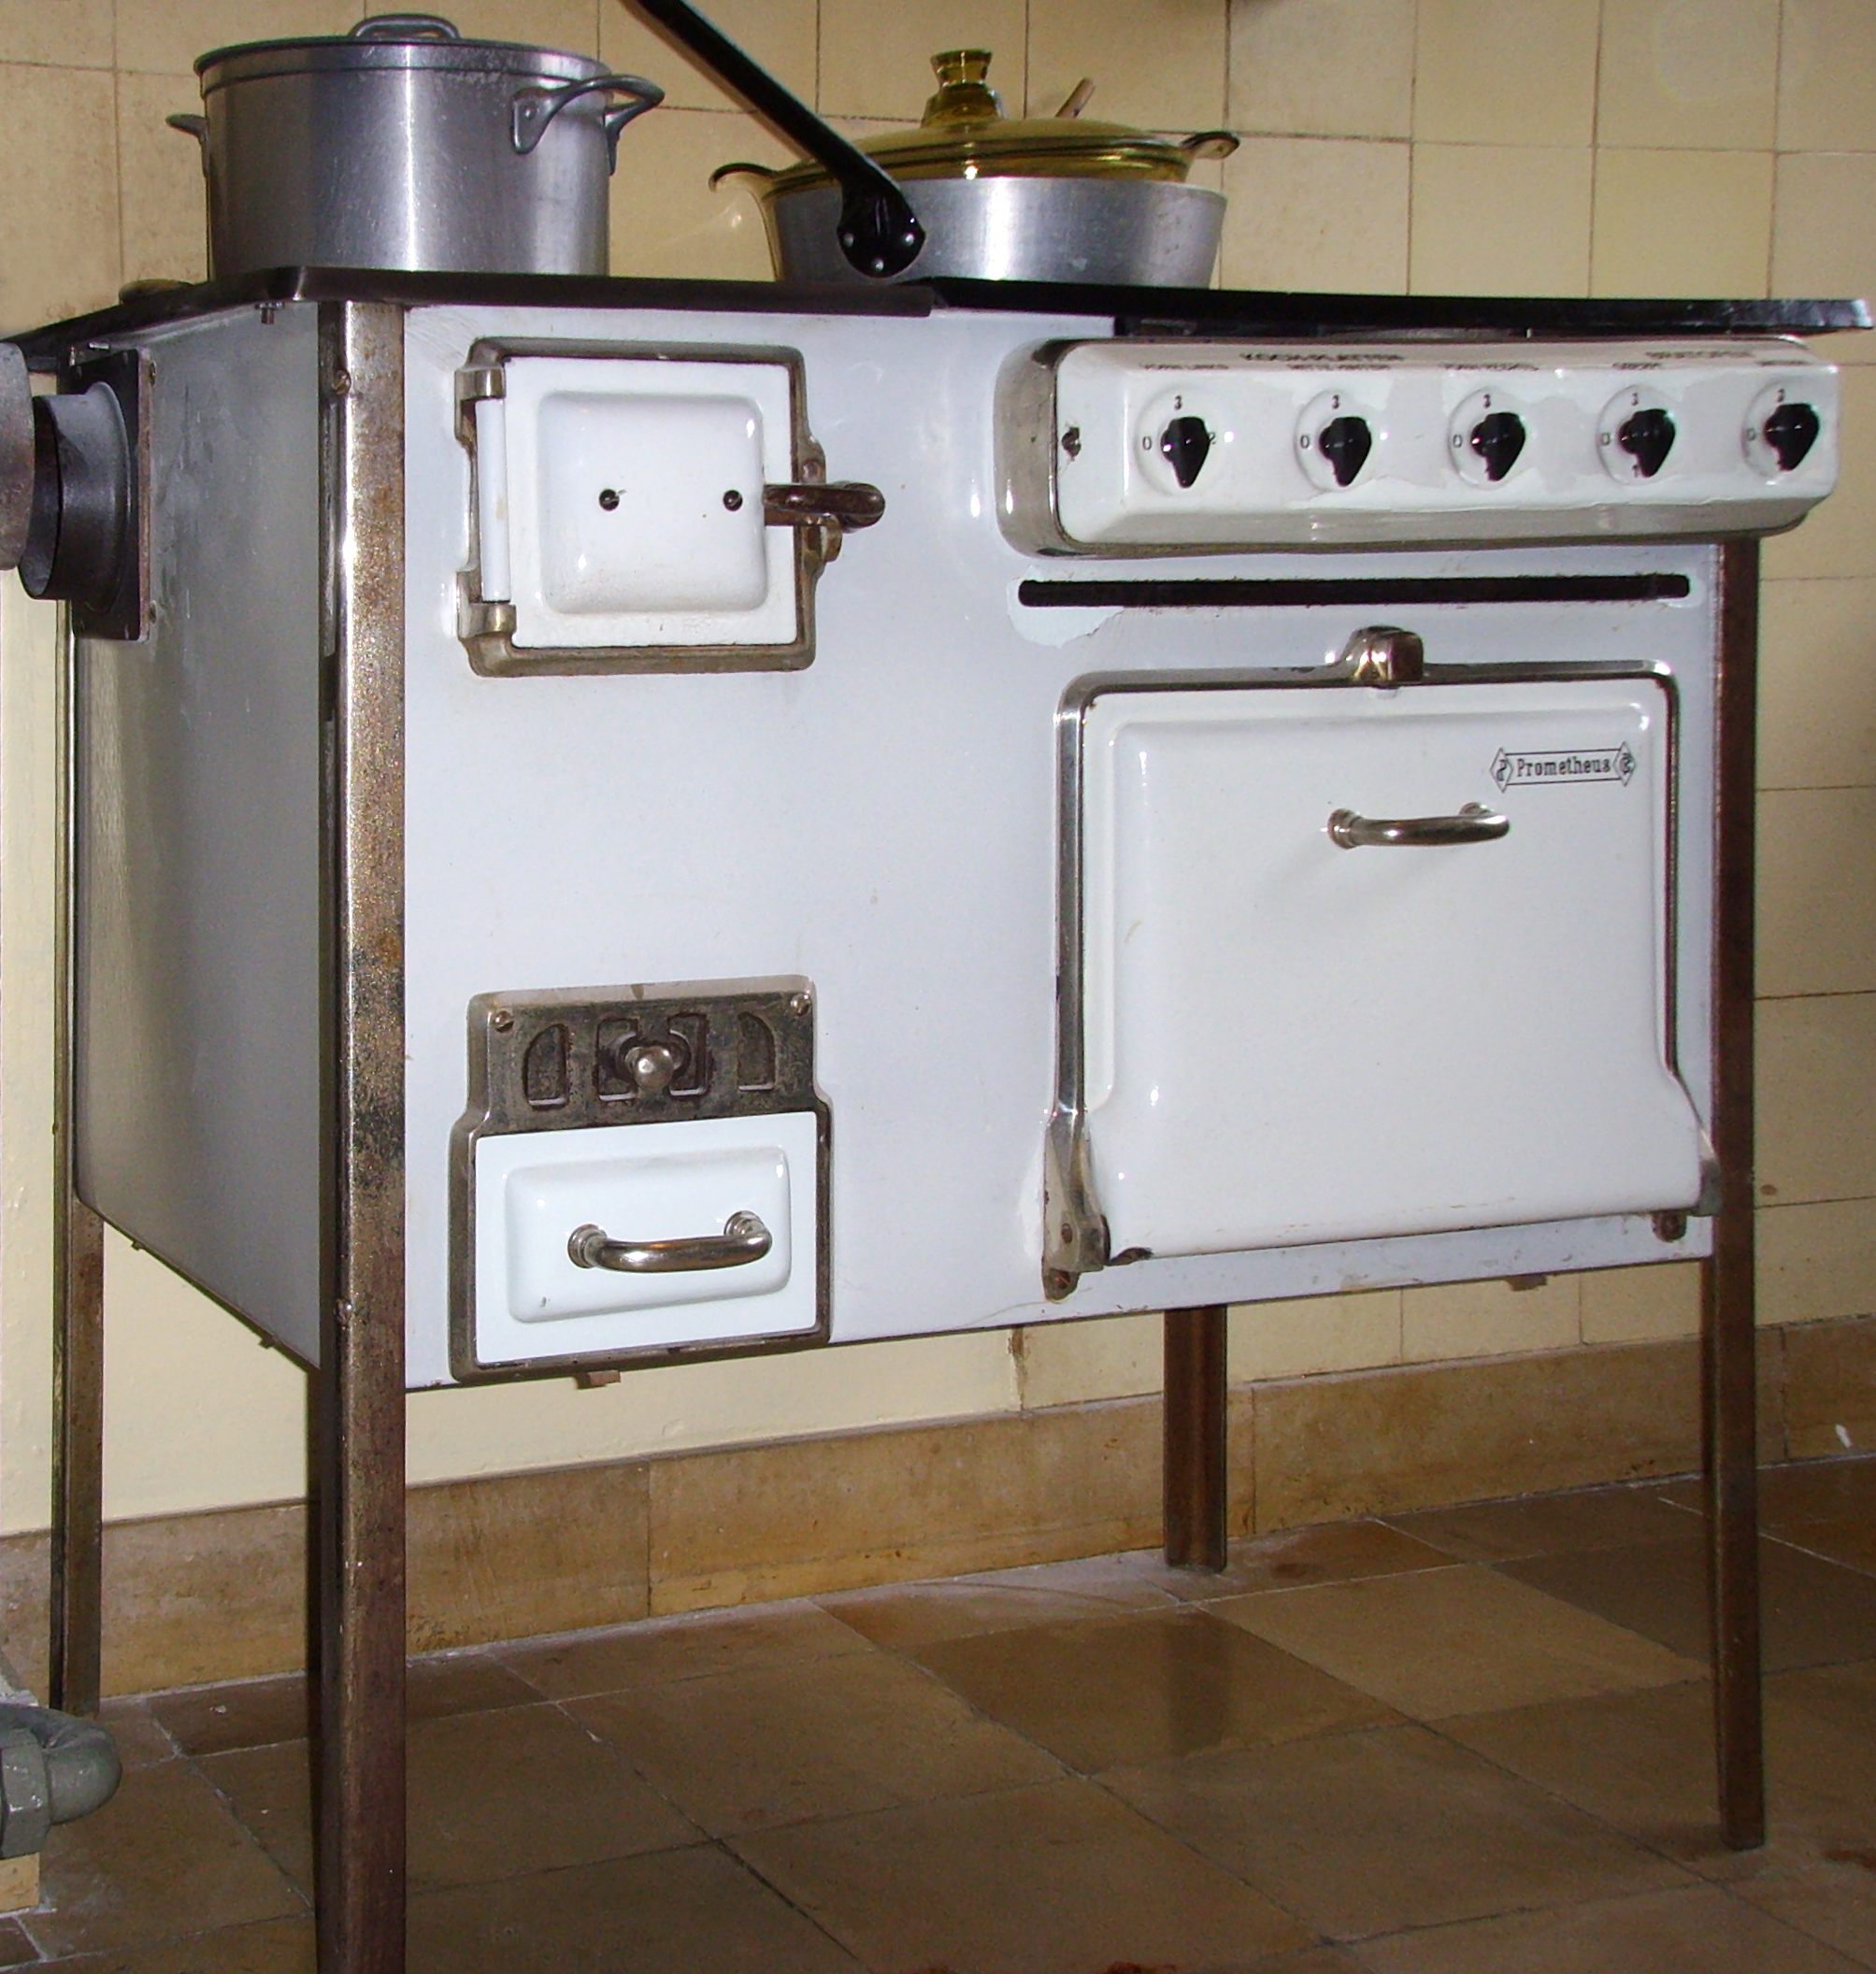 file frankfurt kitchen kitchen stove commons main types kitchen generally source